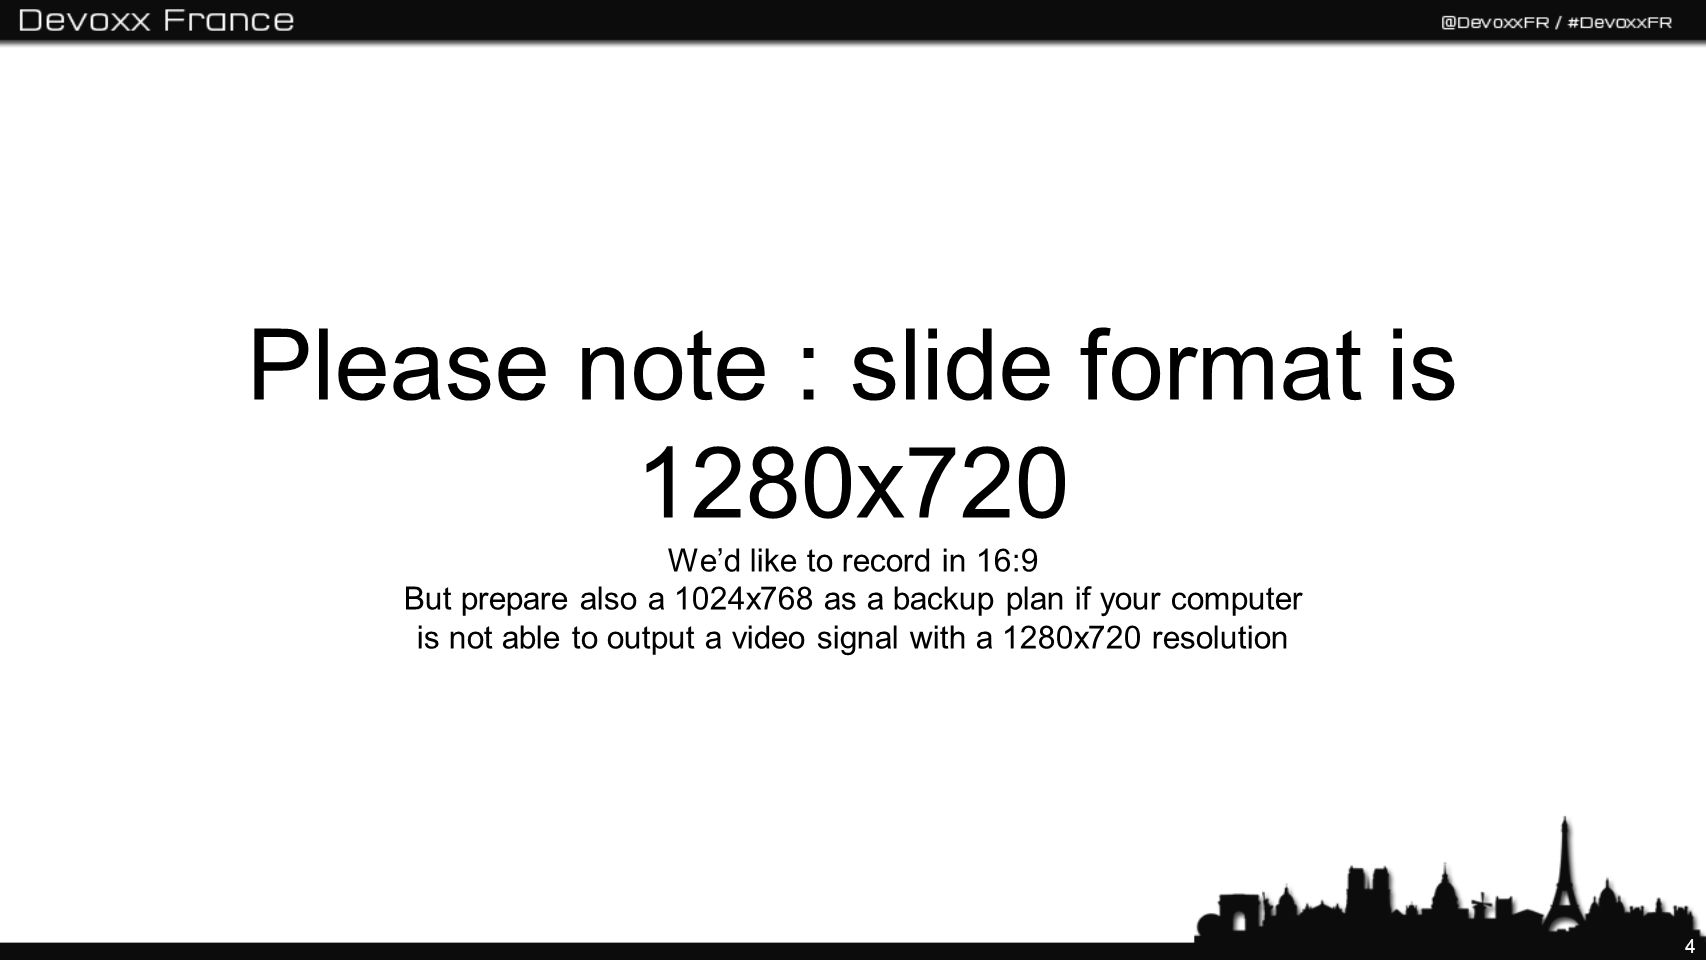 4 Please note : slide format is 1280x720 Wed like to record in 16:9 But prepare also a 1024x768 as a backup plan if your computer is not able to output a video signal with a 1280x720 resolution